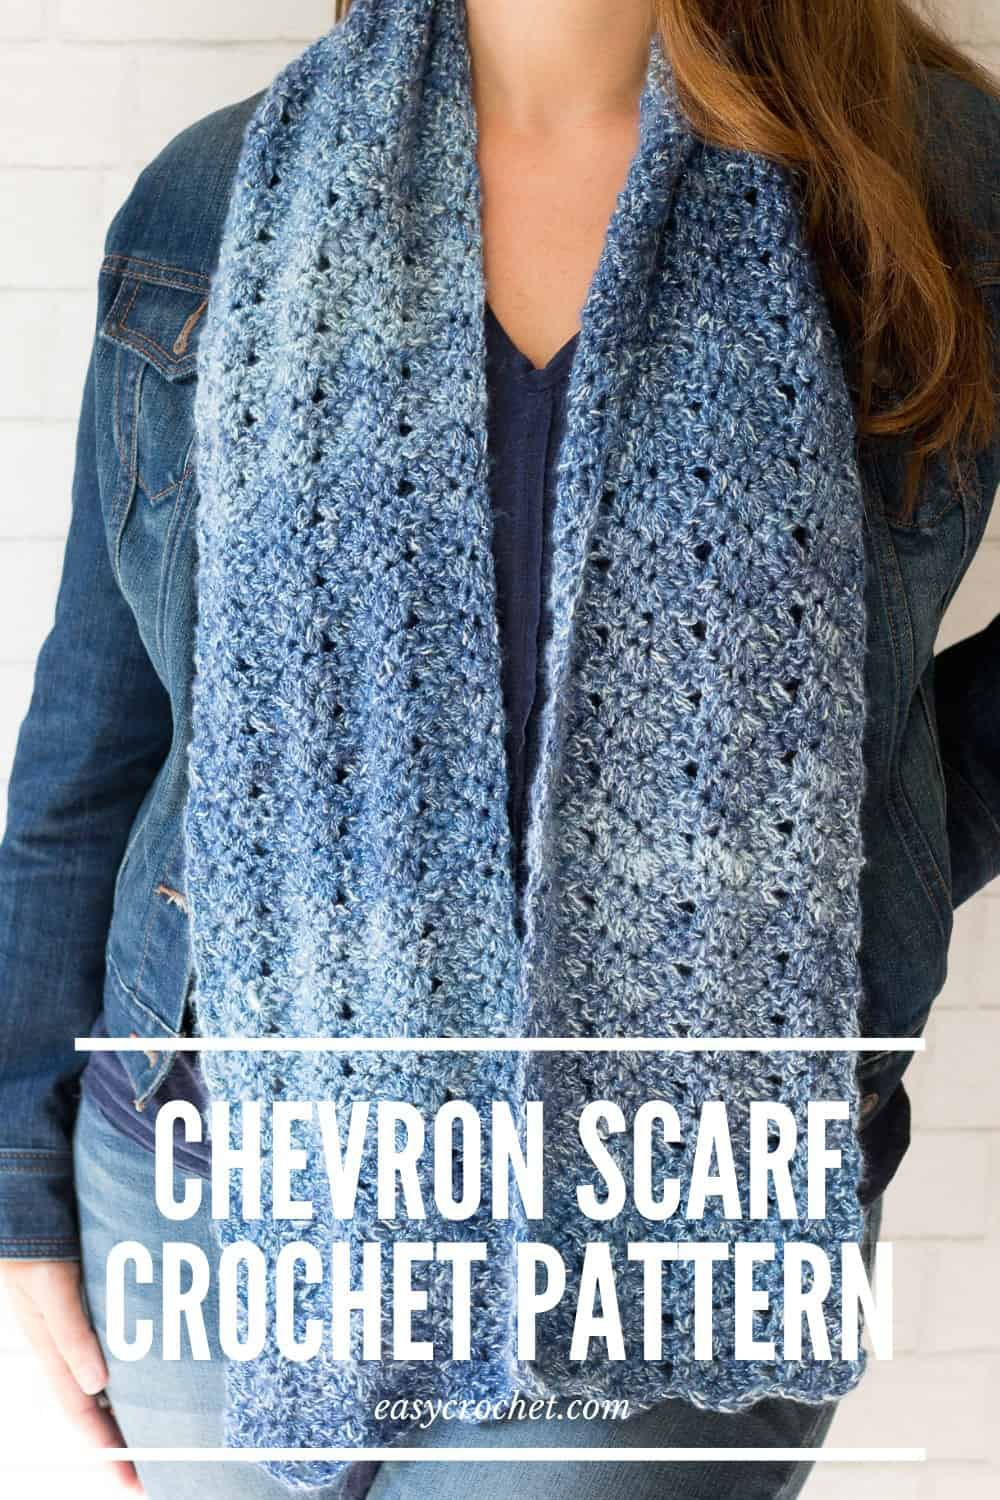 Chevron Scarf Crochet Pattern via @easycrochetcom